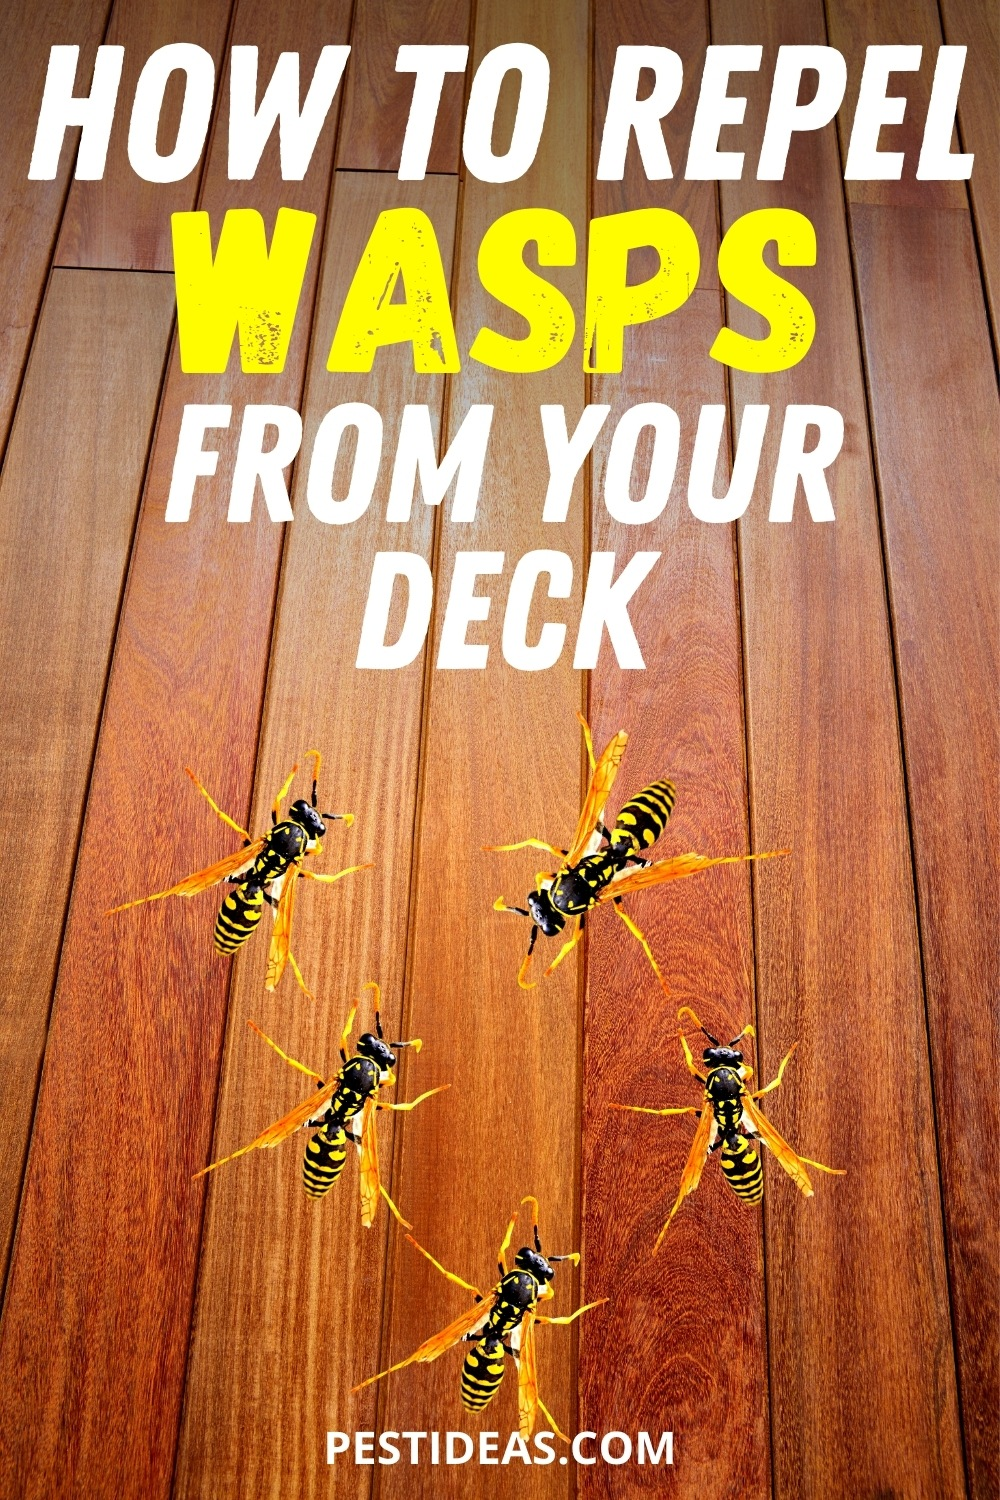 Repel Wasps From Your Deck